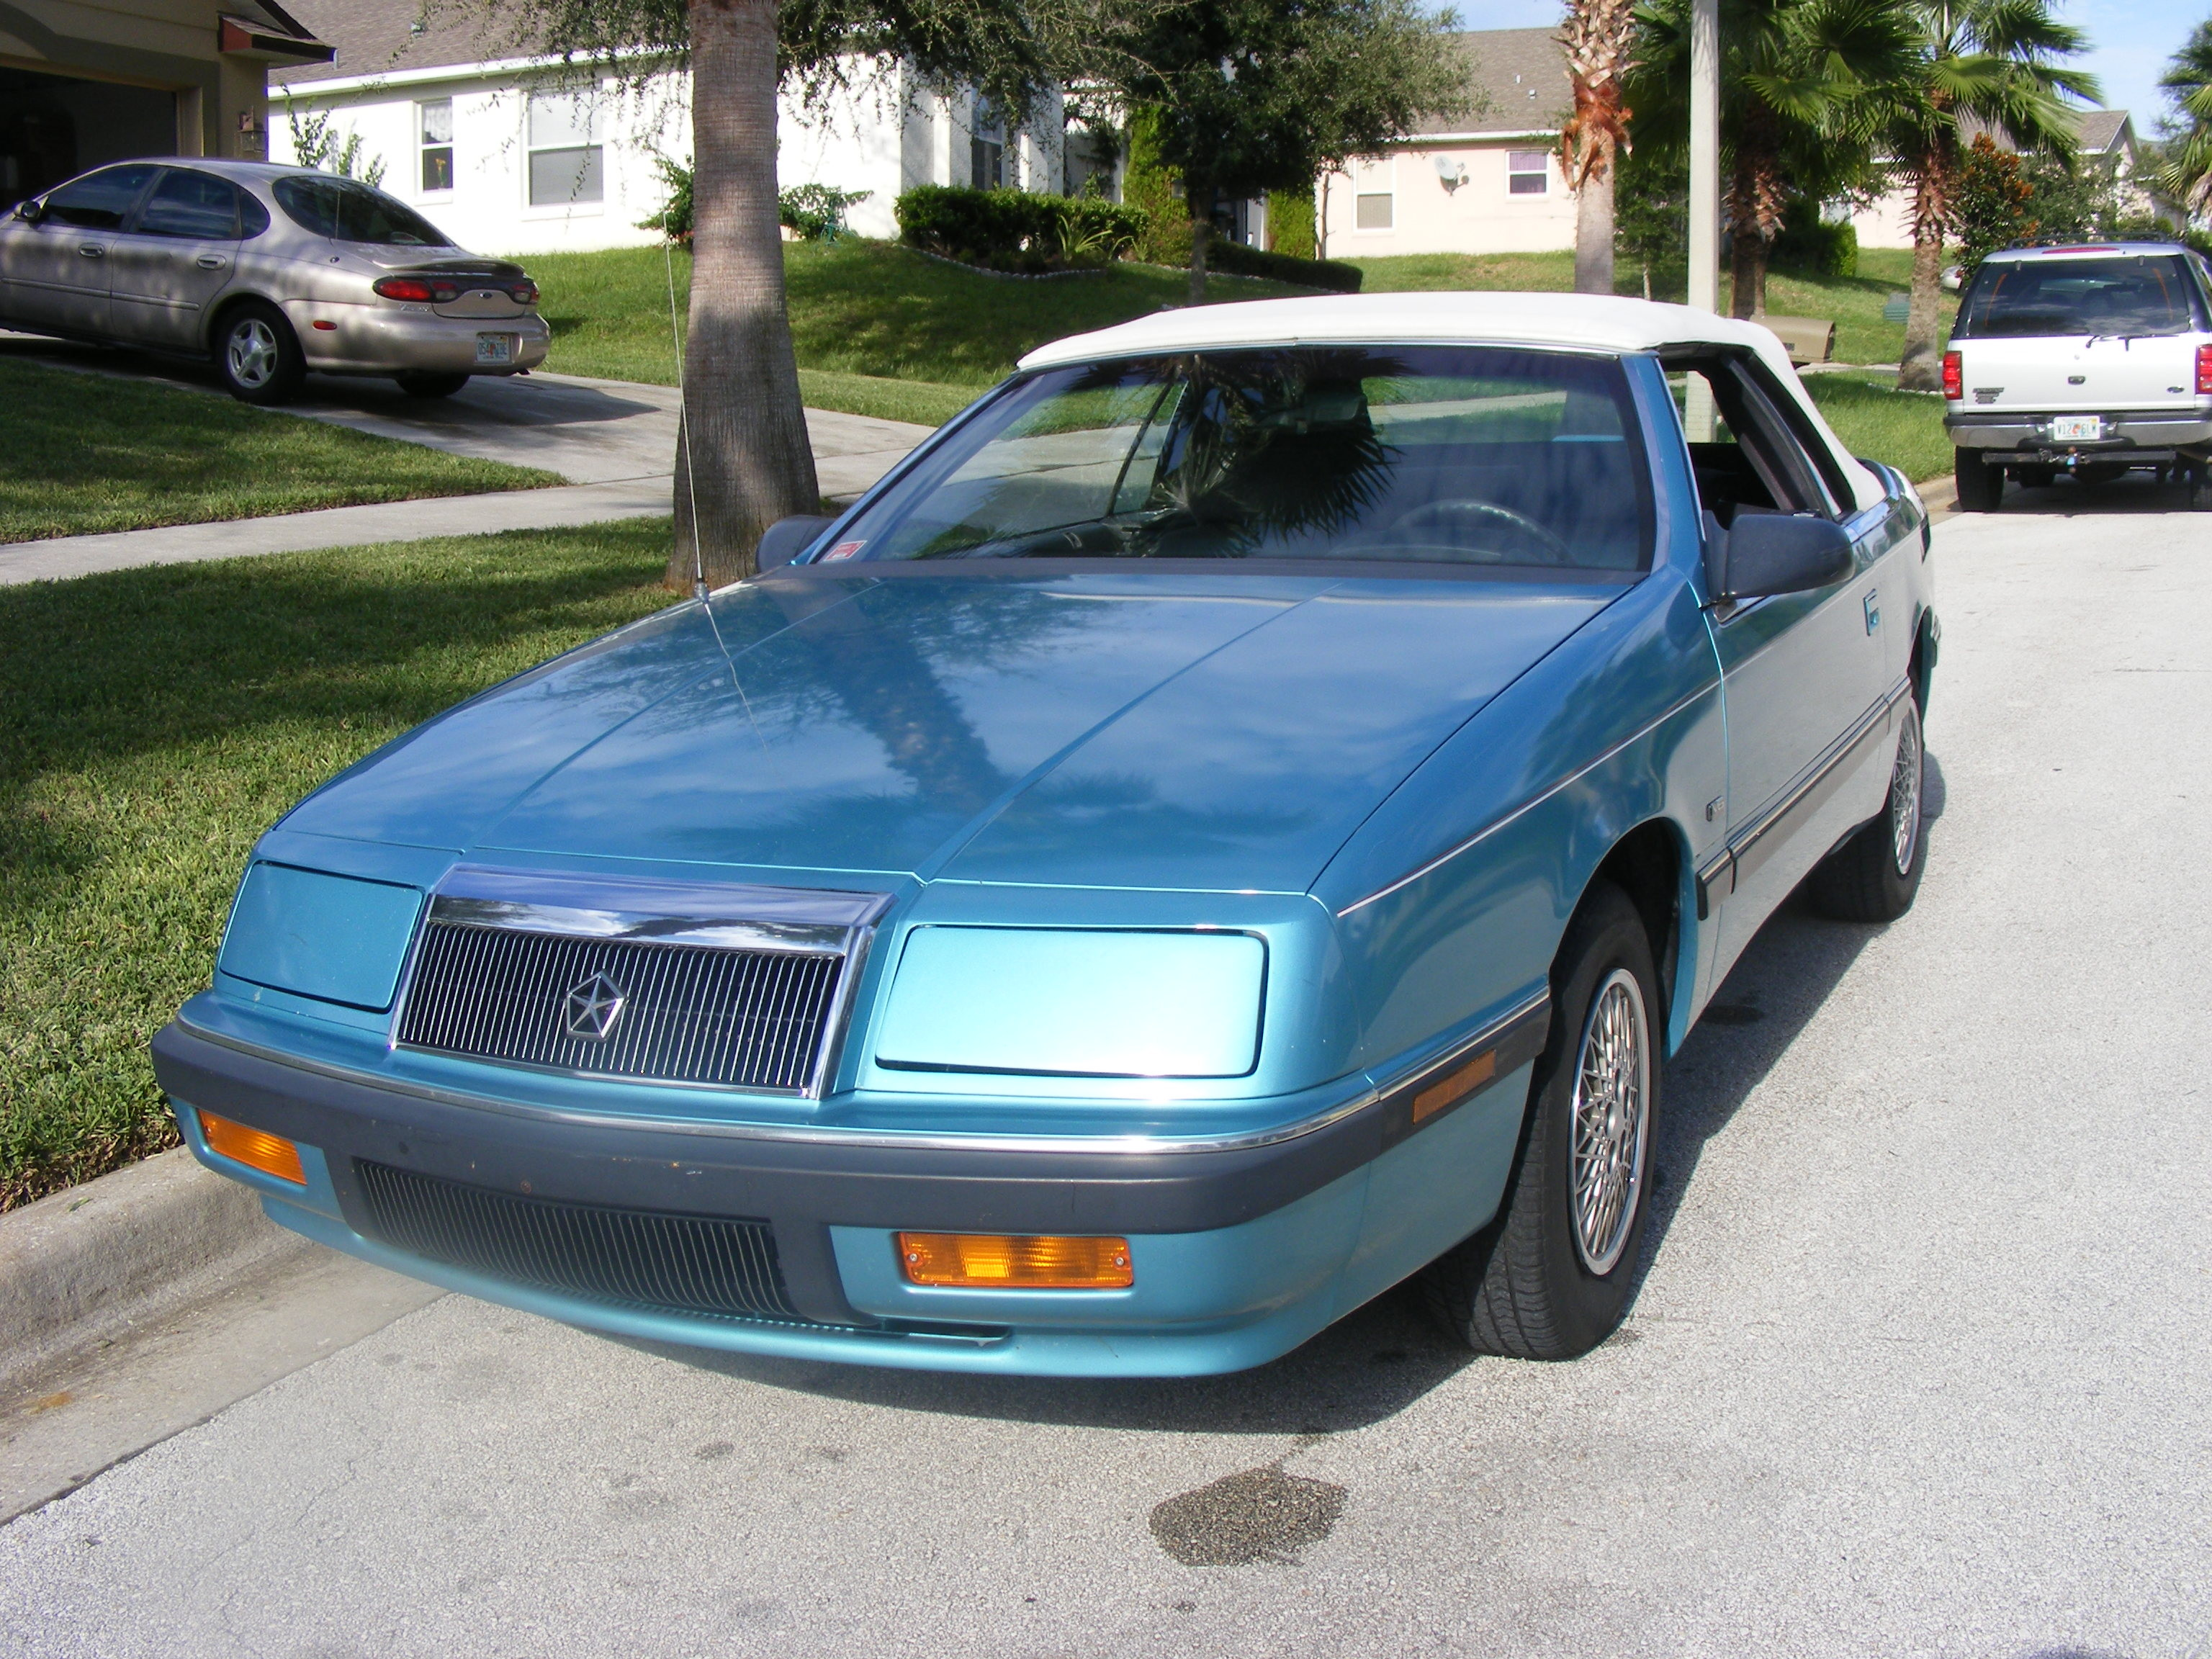 1992 Chrysler Le Baron #14